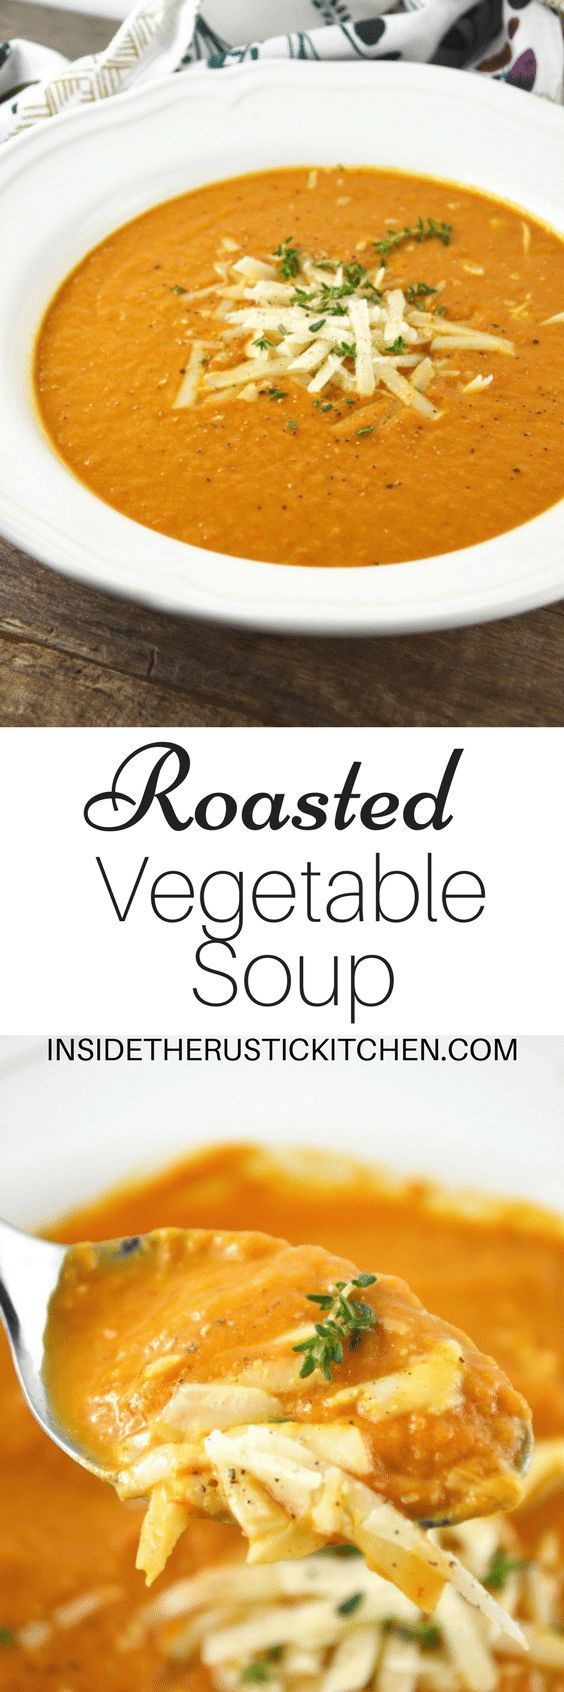 This Roasted Vegetable Soup is packed full of delicious flavour, made from roasted squash, red pepper, eggplant and garlic